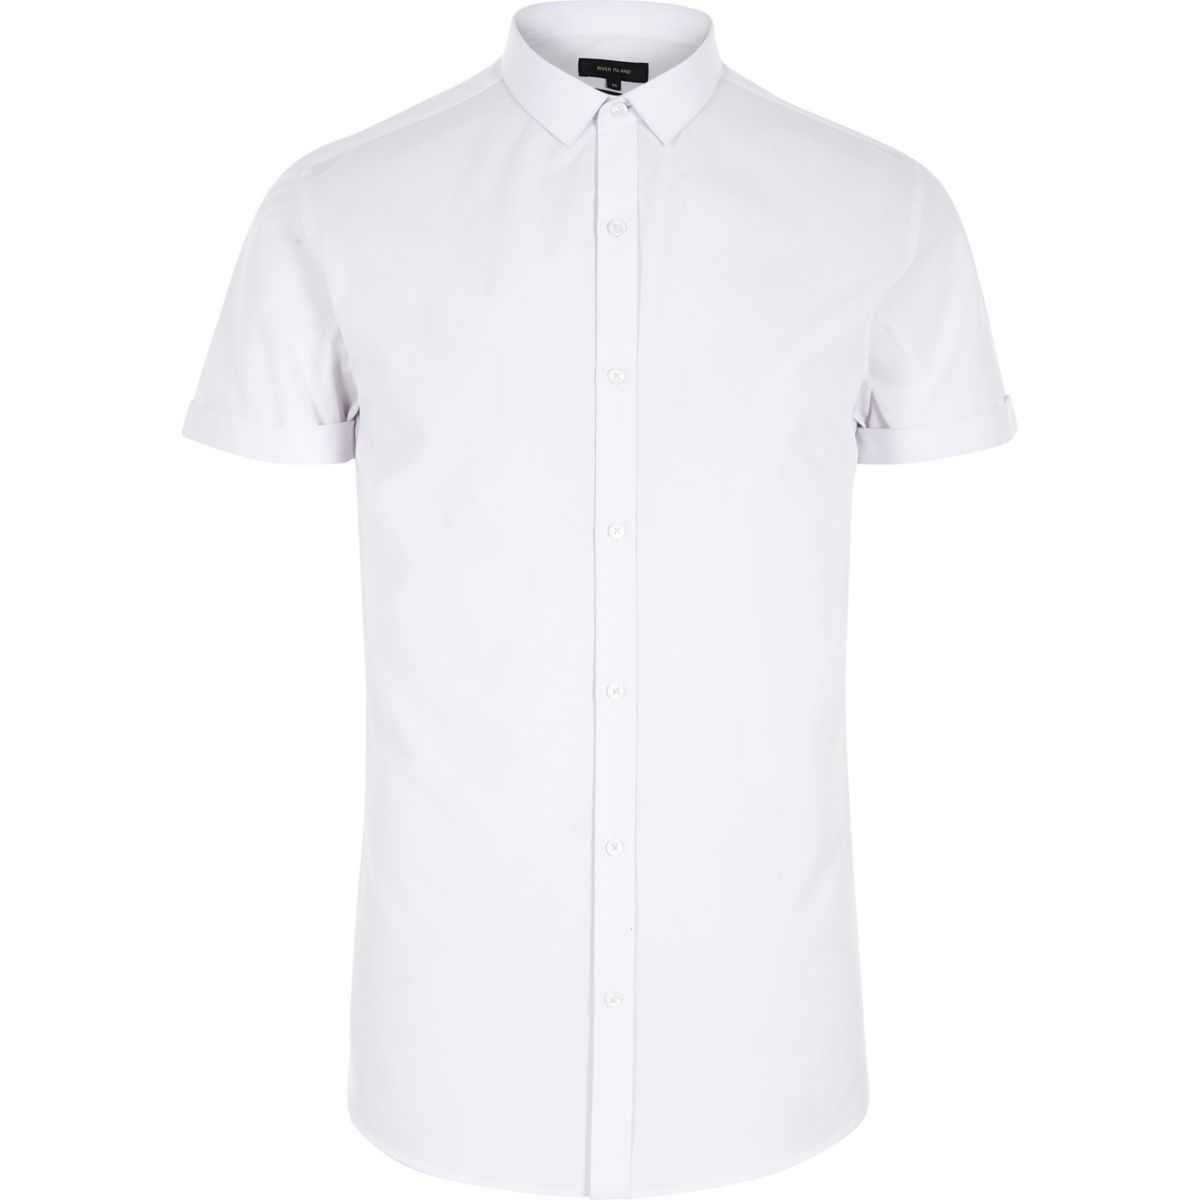 White Short Sleeve Slim Fit Shirt Shirts Sale Men